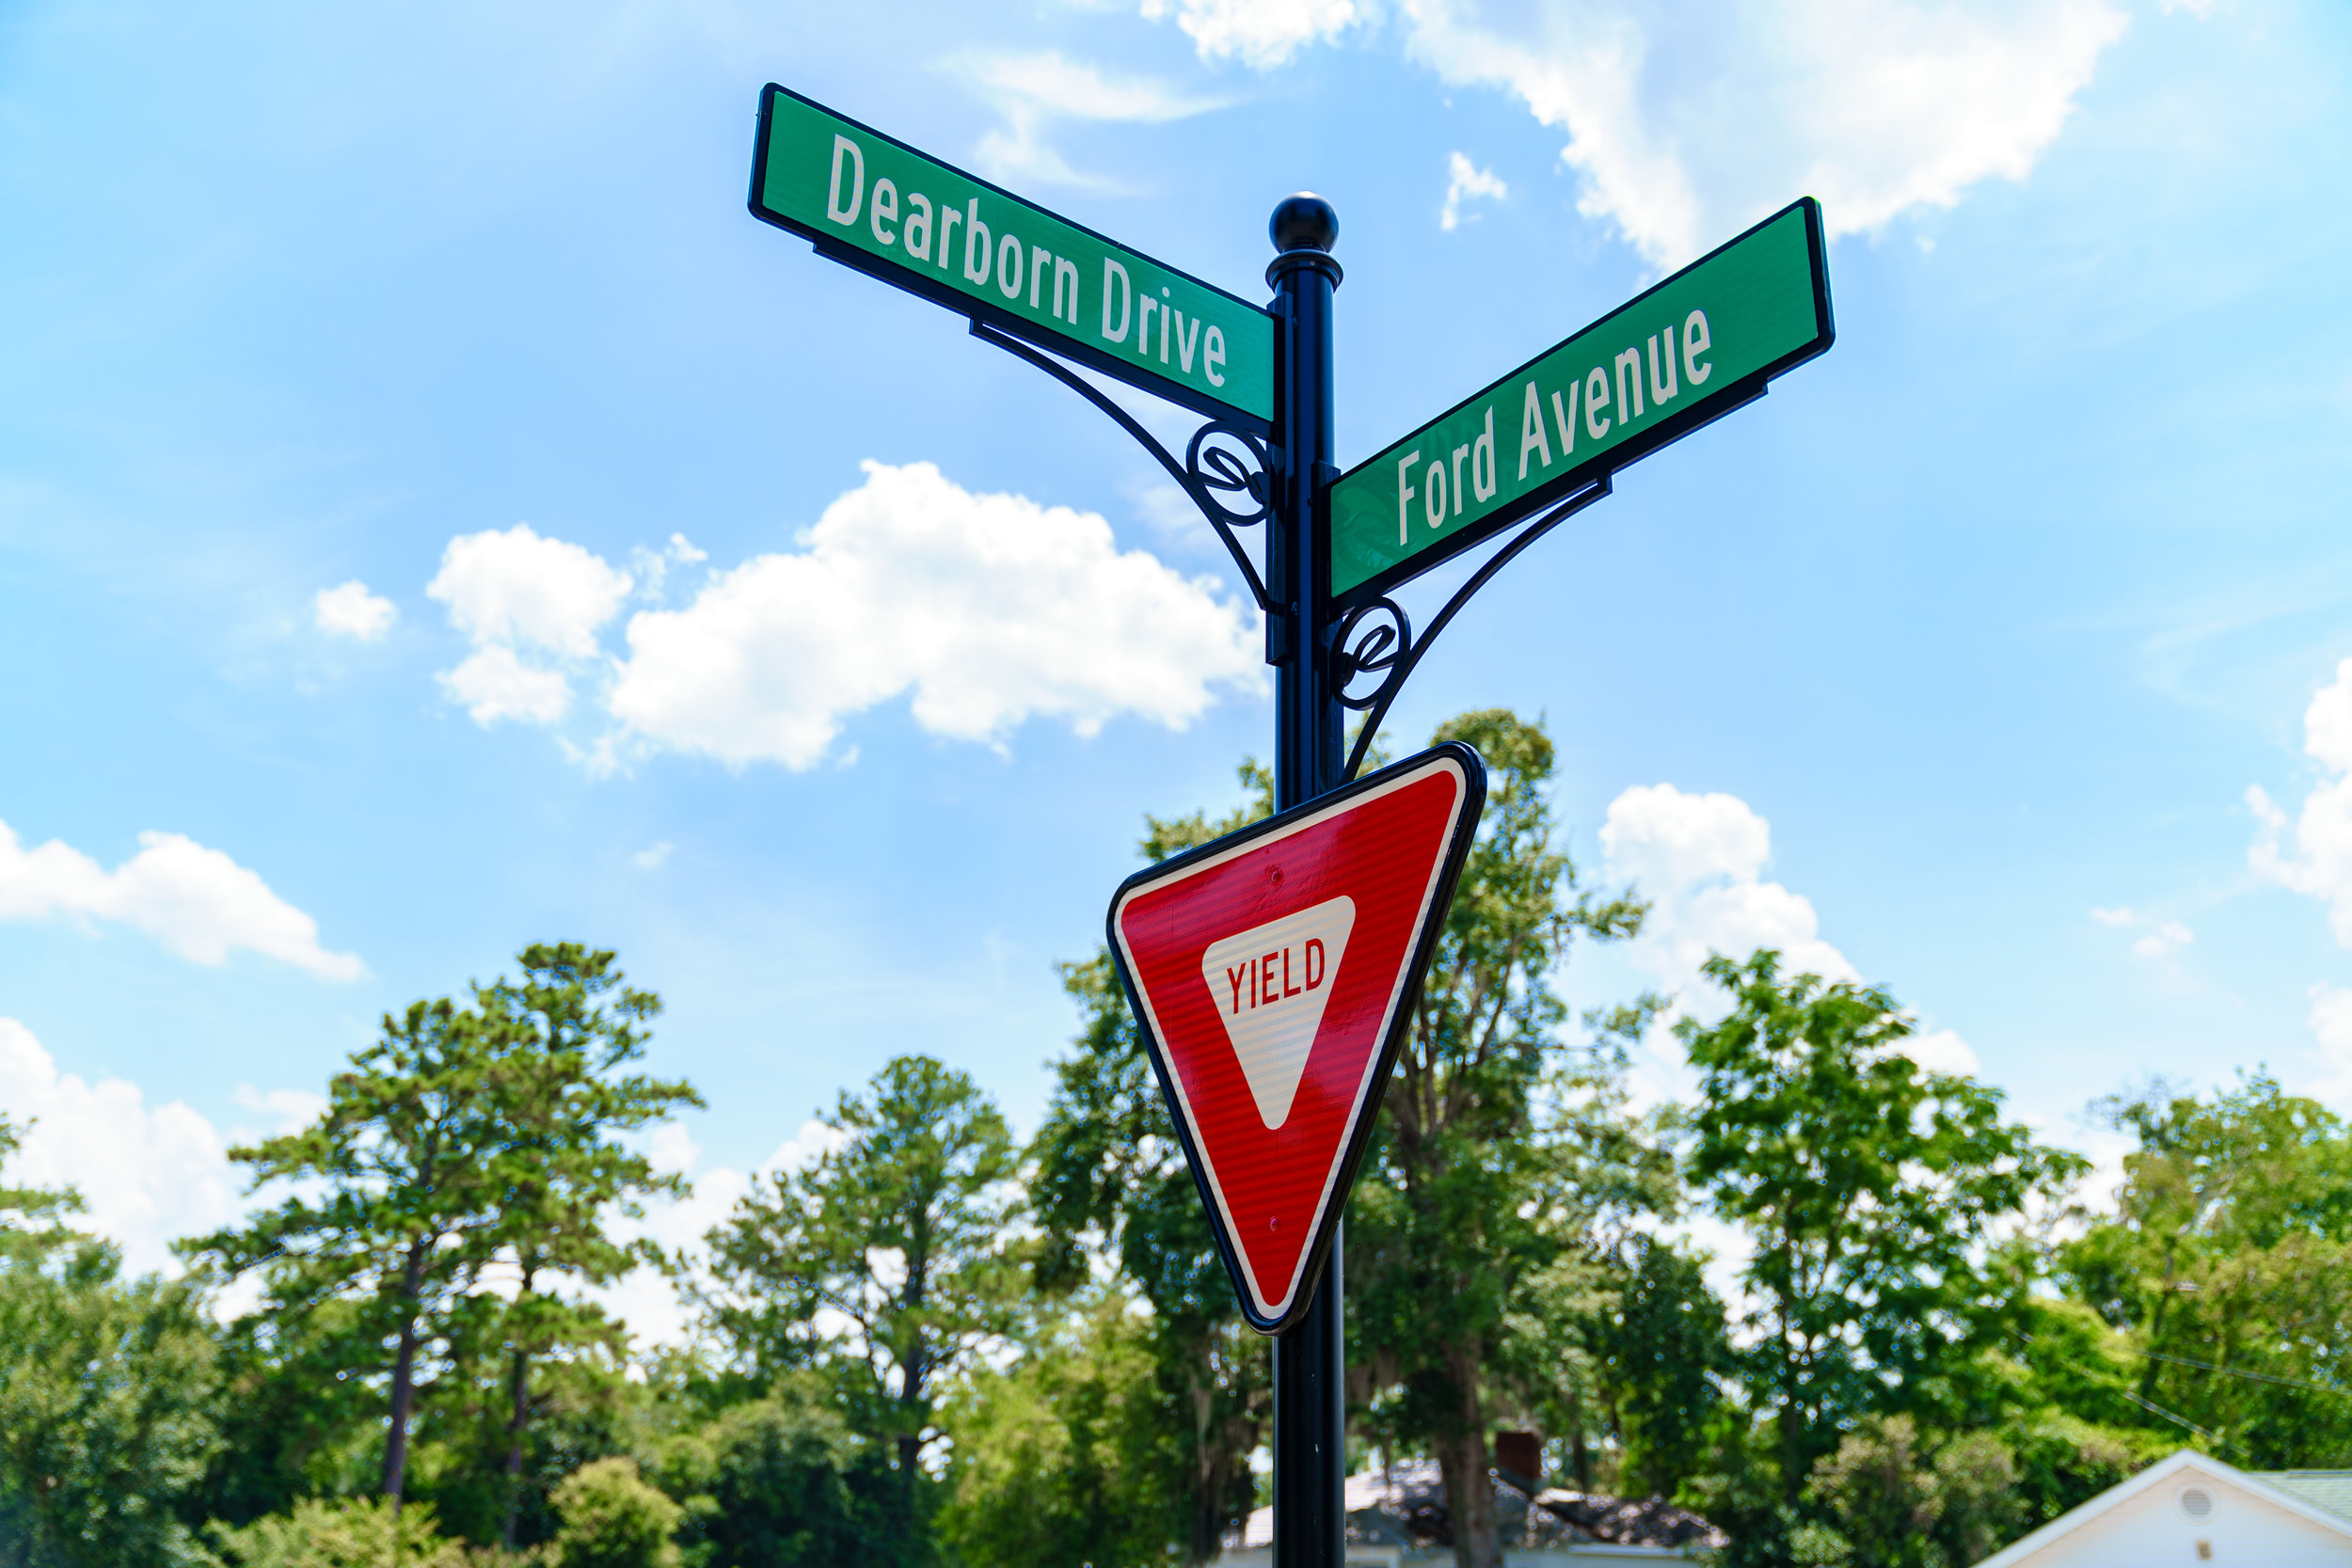 Richmond_Wayfinding (13 of 14).jpg